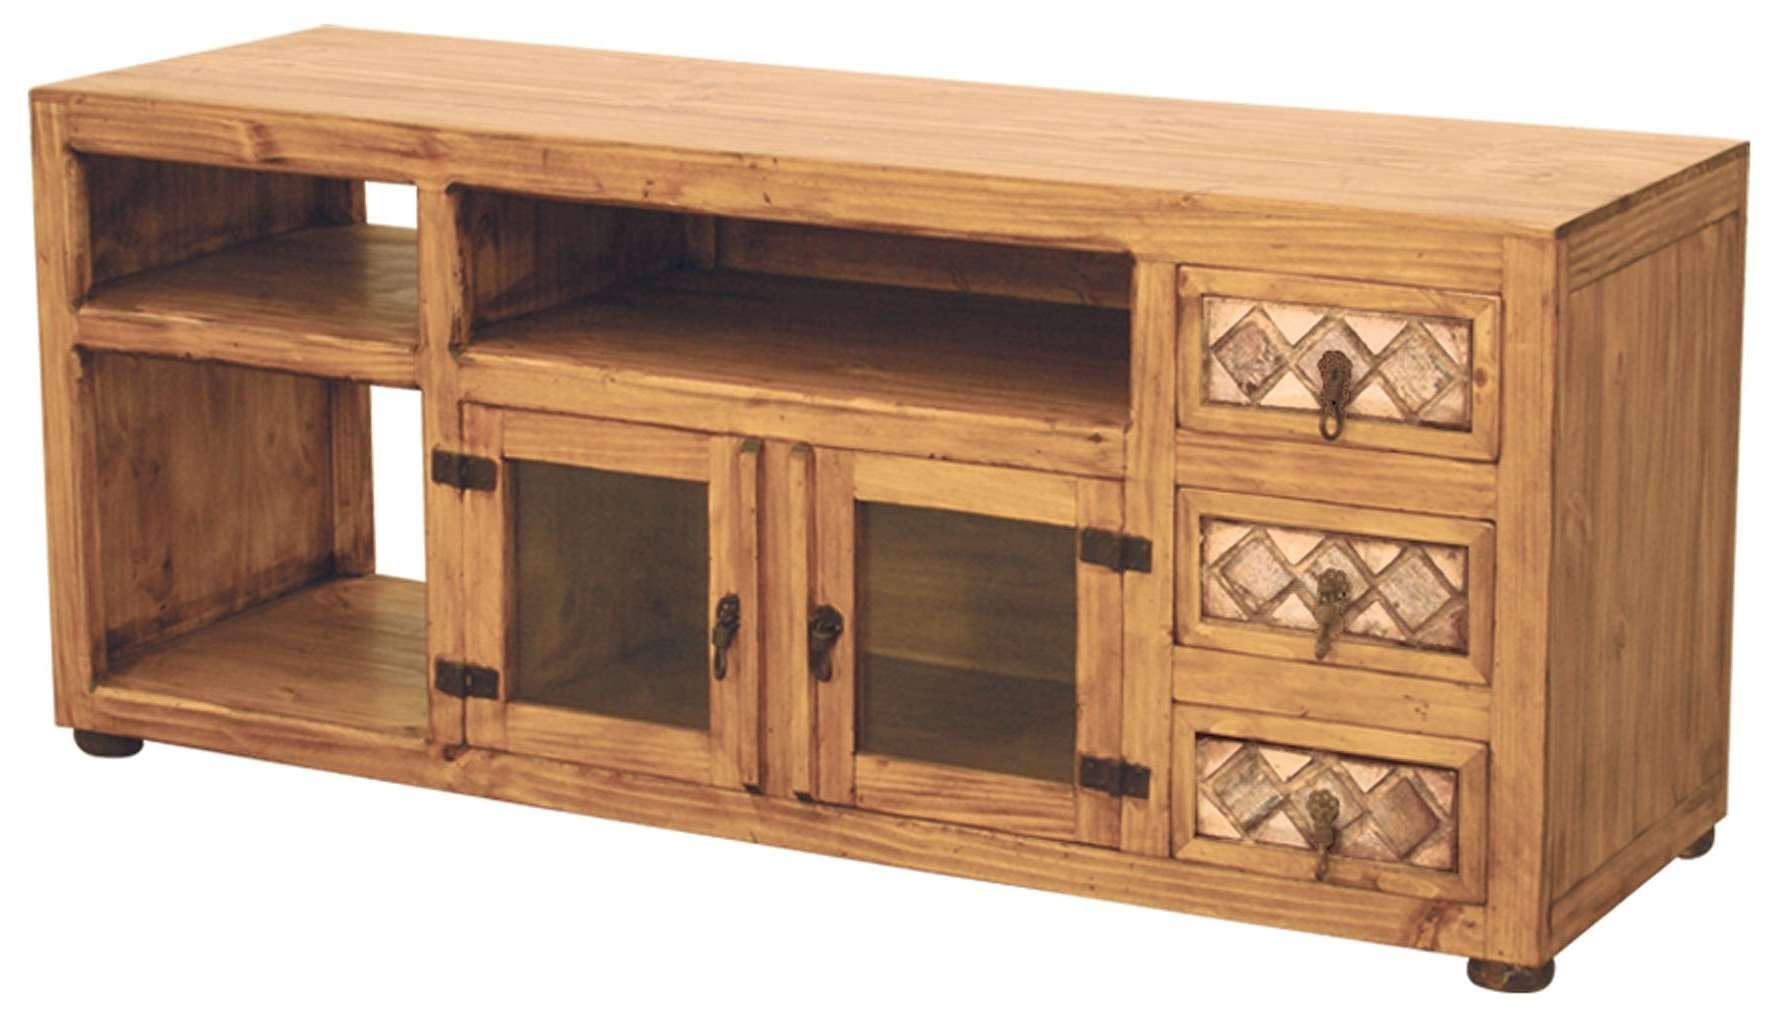 Pine Furniture Tv Stand Decor | Gyleshomes Regarding Pine Wood Tv Stands (View 9 of 15)